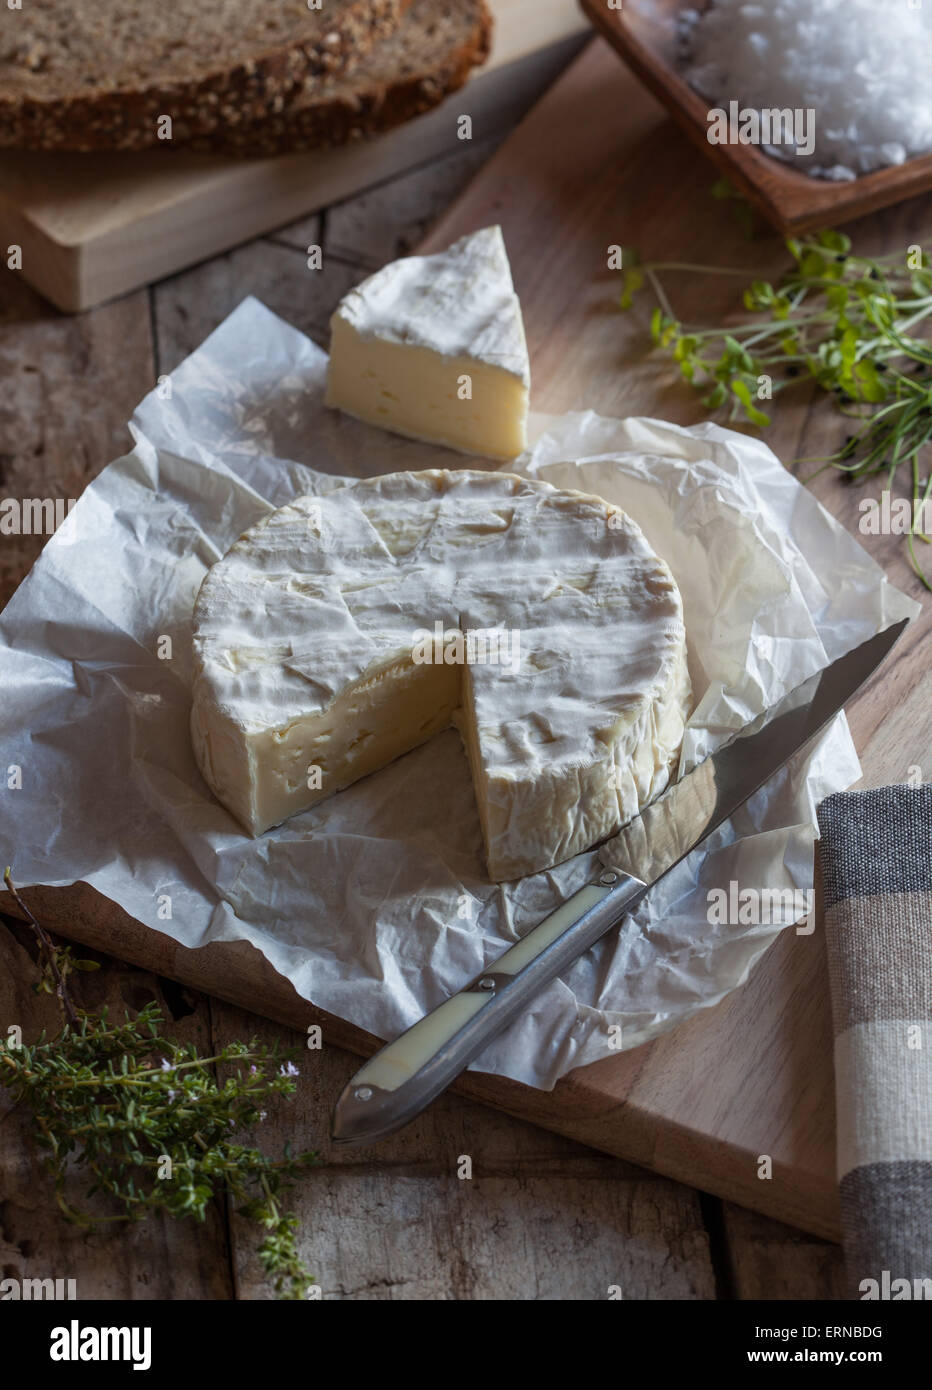 A piece of camembert cheese on a cutting board with a knife and herbs. - Stock Image